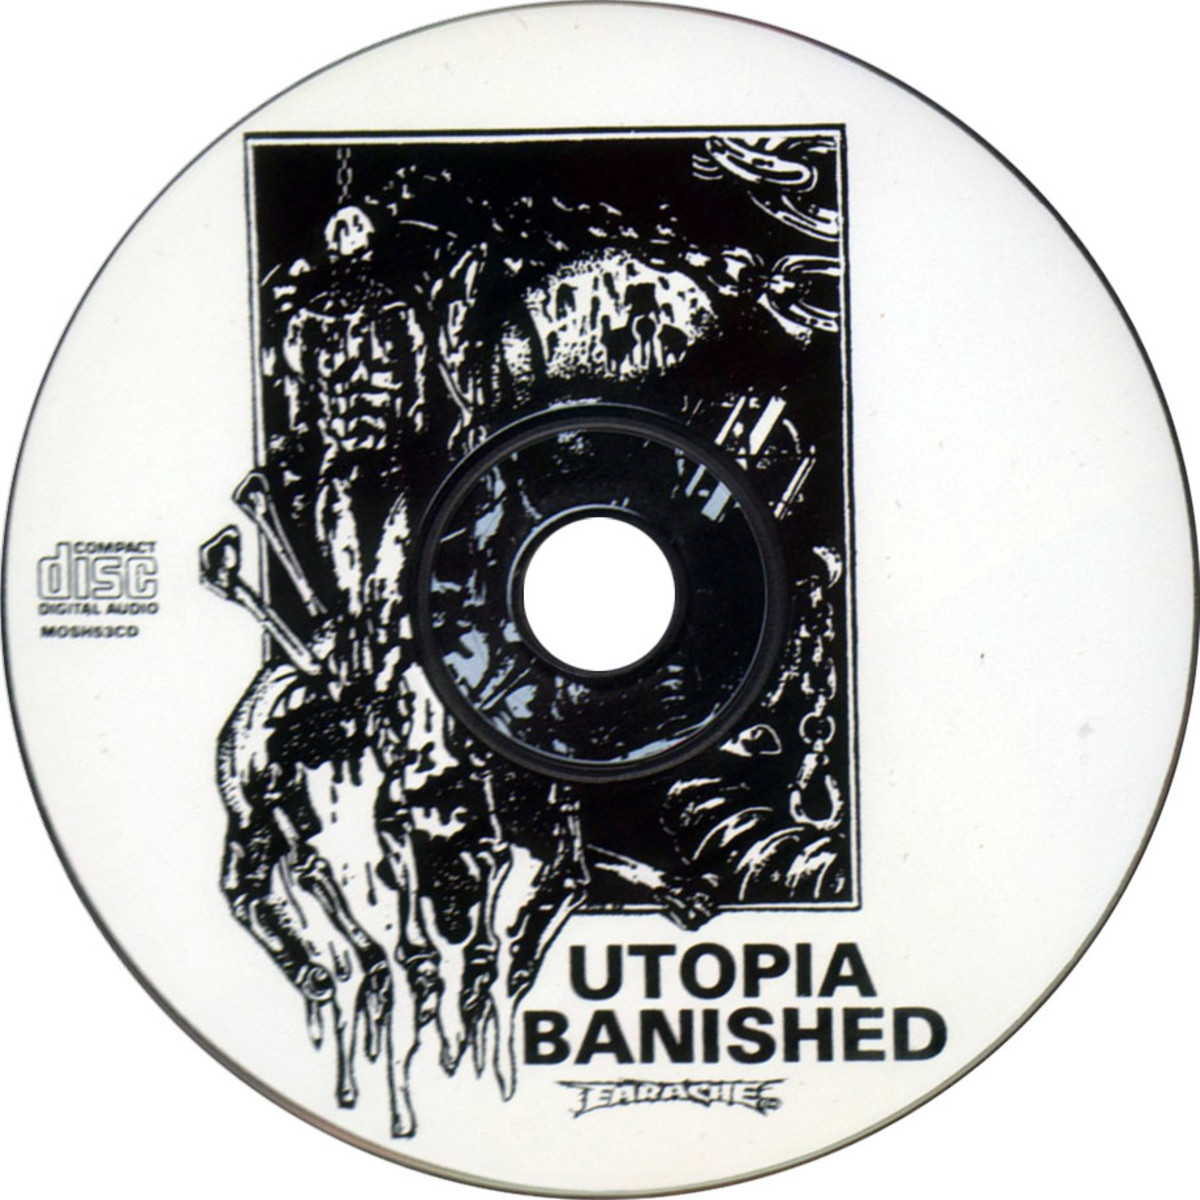 Review: The Album Utopia Banished By British Death Metal Band Napalm Death